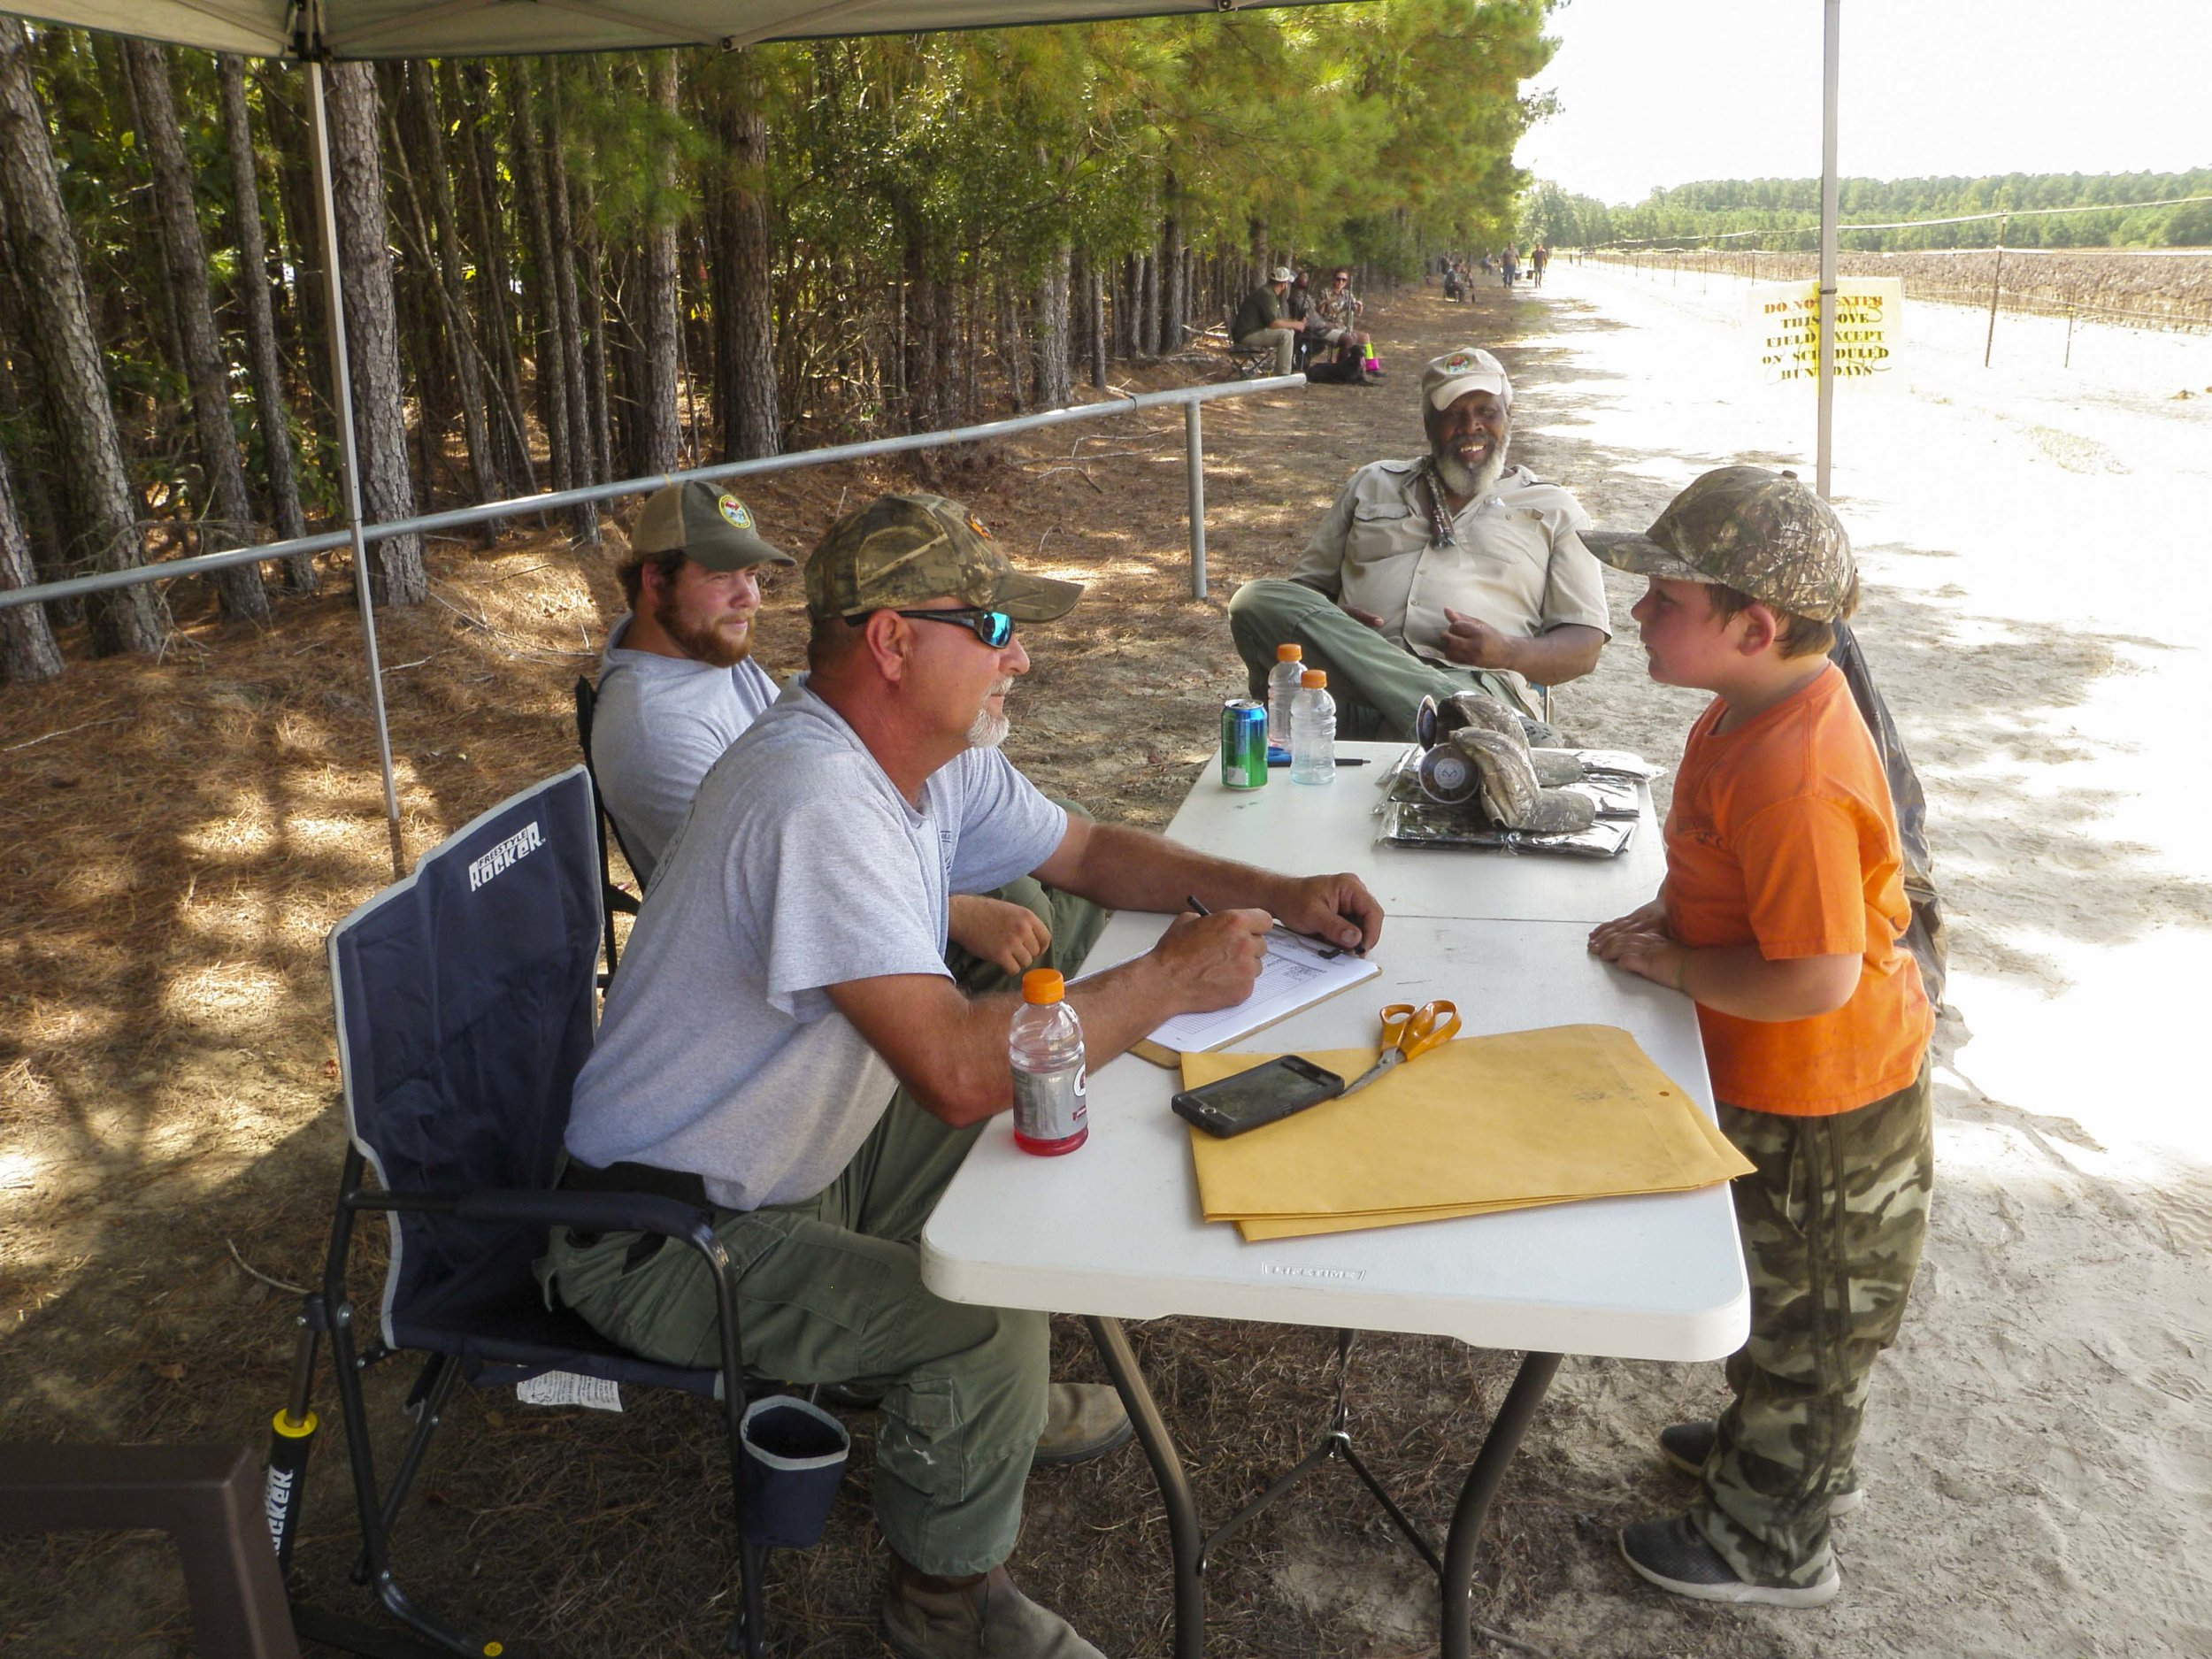 SCDNR wildlife technicians collect data from a young hunter at Pee Dee Station dove field.